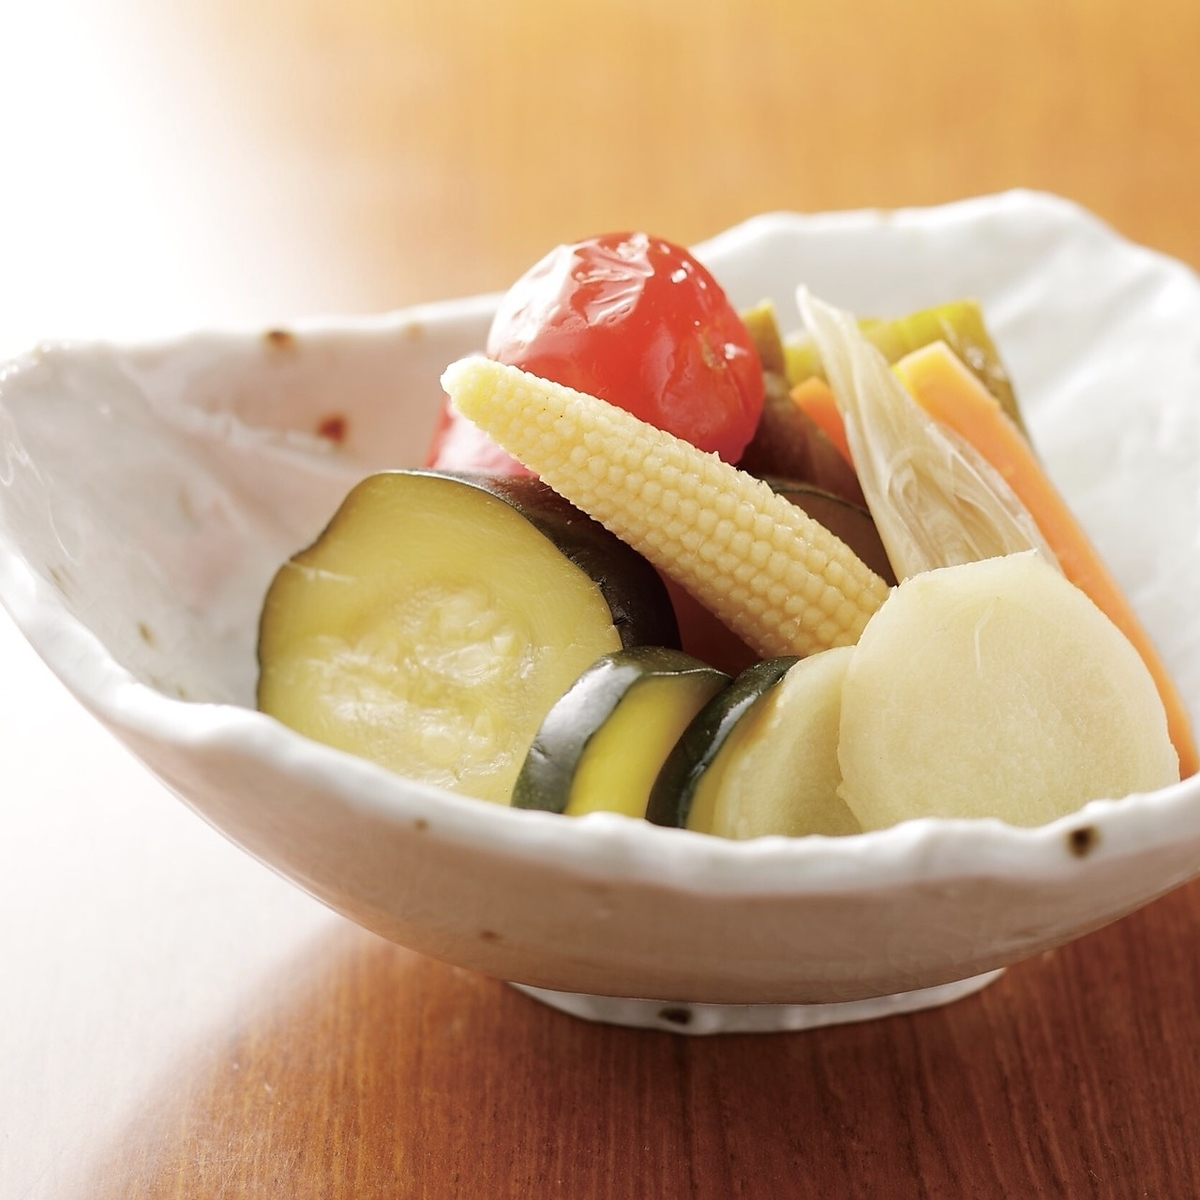 Japanese-style pickles